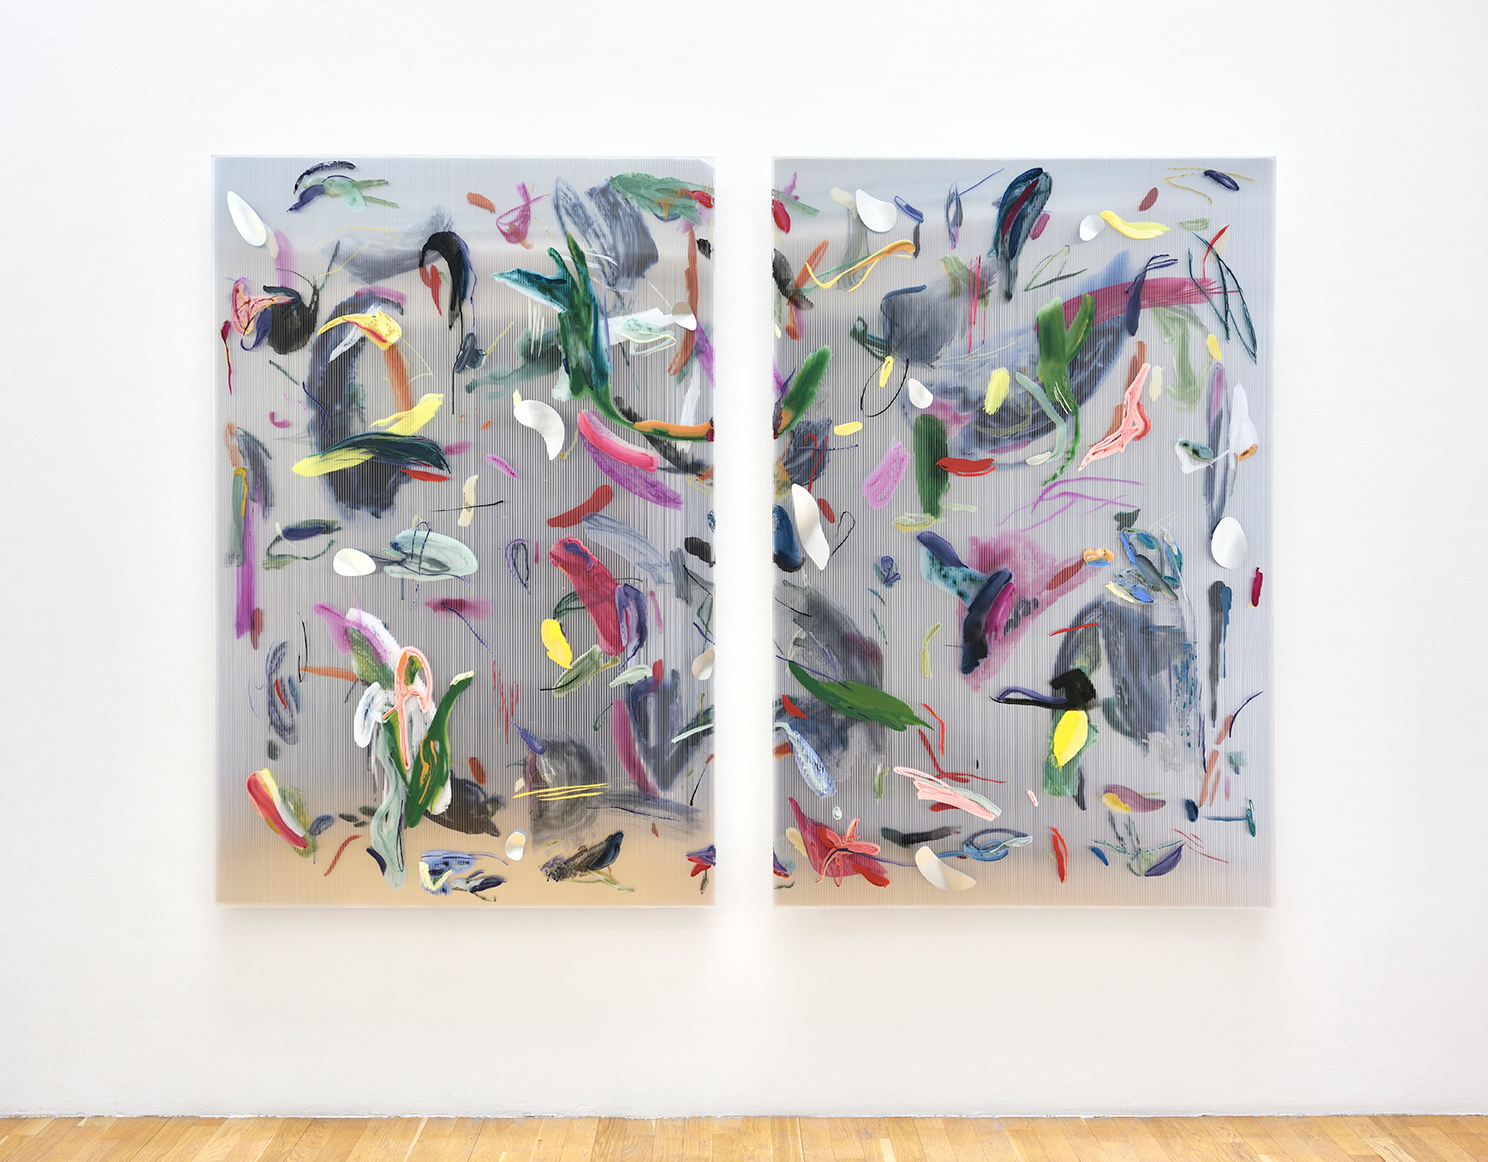 Untitled (Ampersand) , 2019 gouache, acrylic, ink on polycarbonate, two-way mirror, aluminum, threaded rods 183 x 257 cm  © Rebecca Fanuele